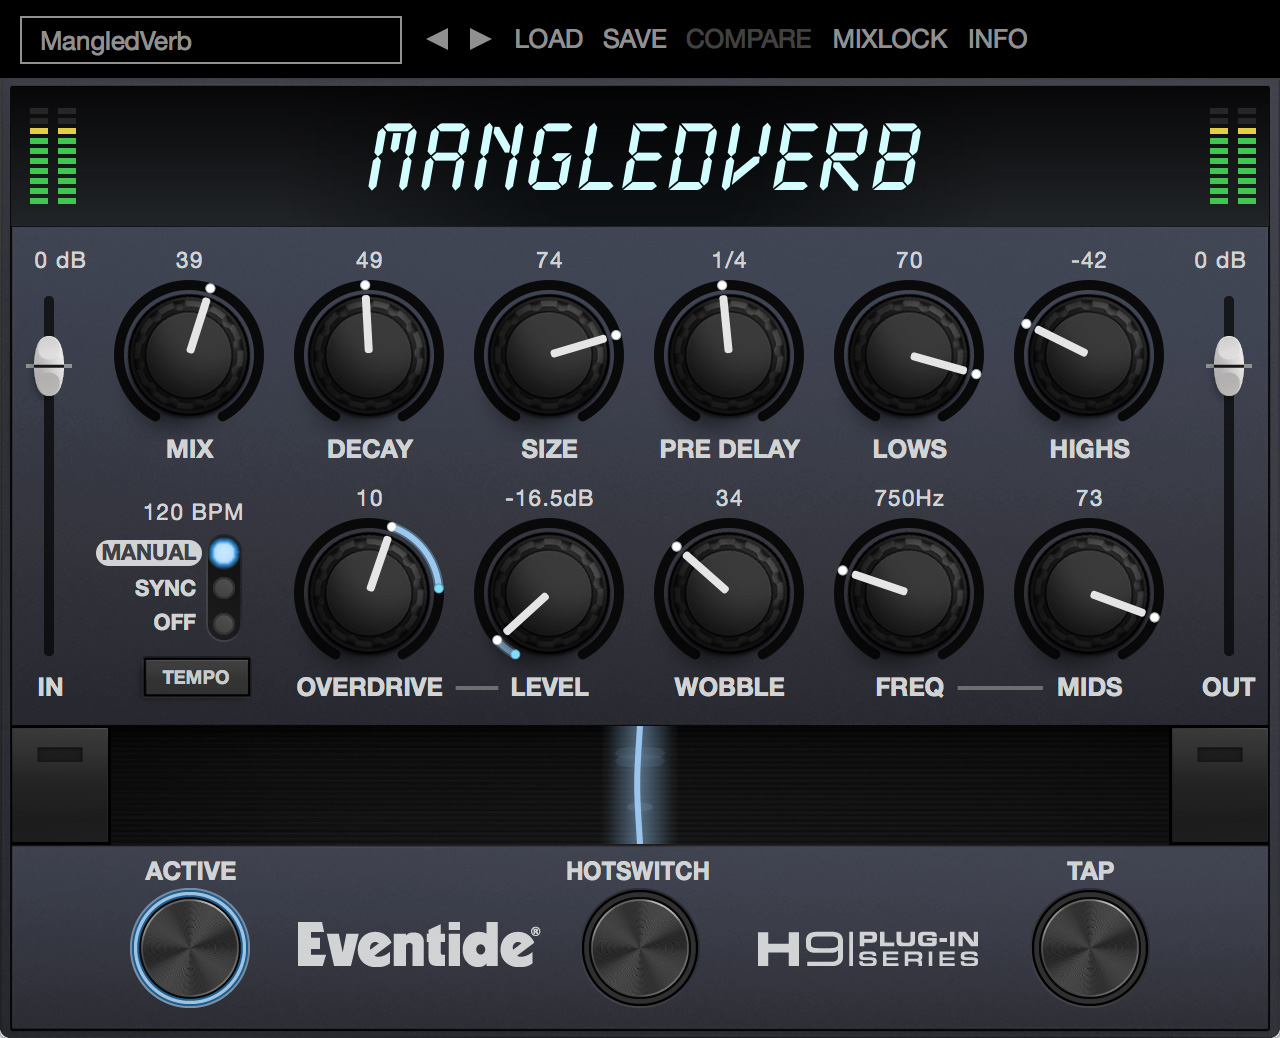 MangledVerb plug-in screen shot